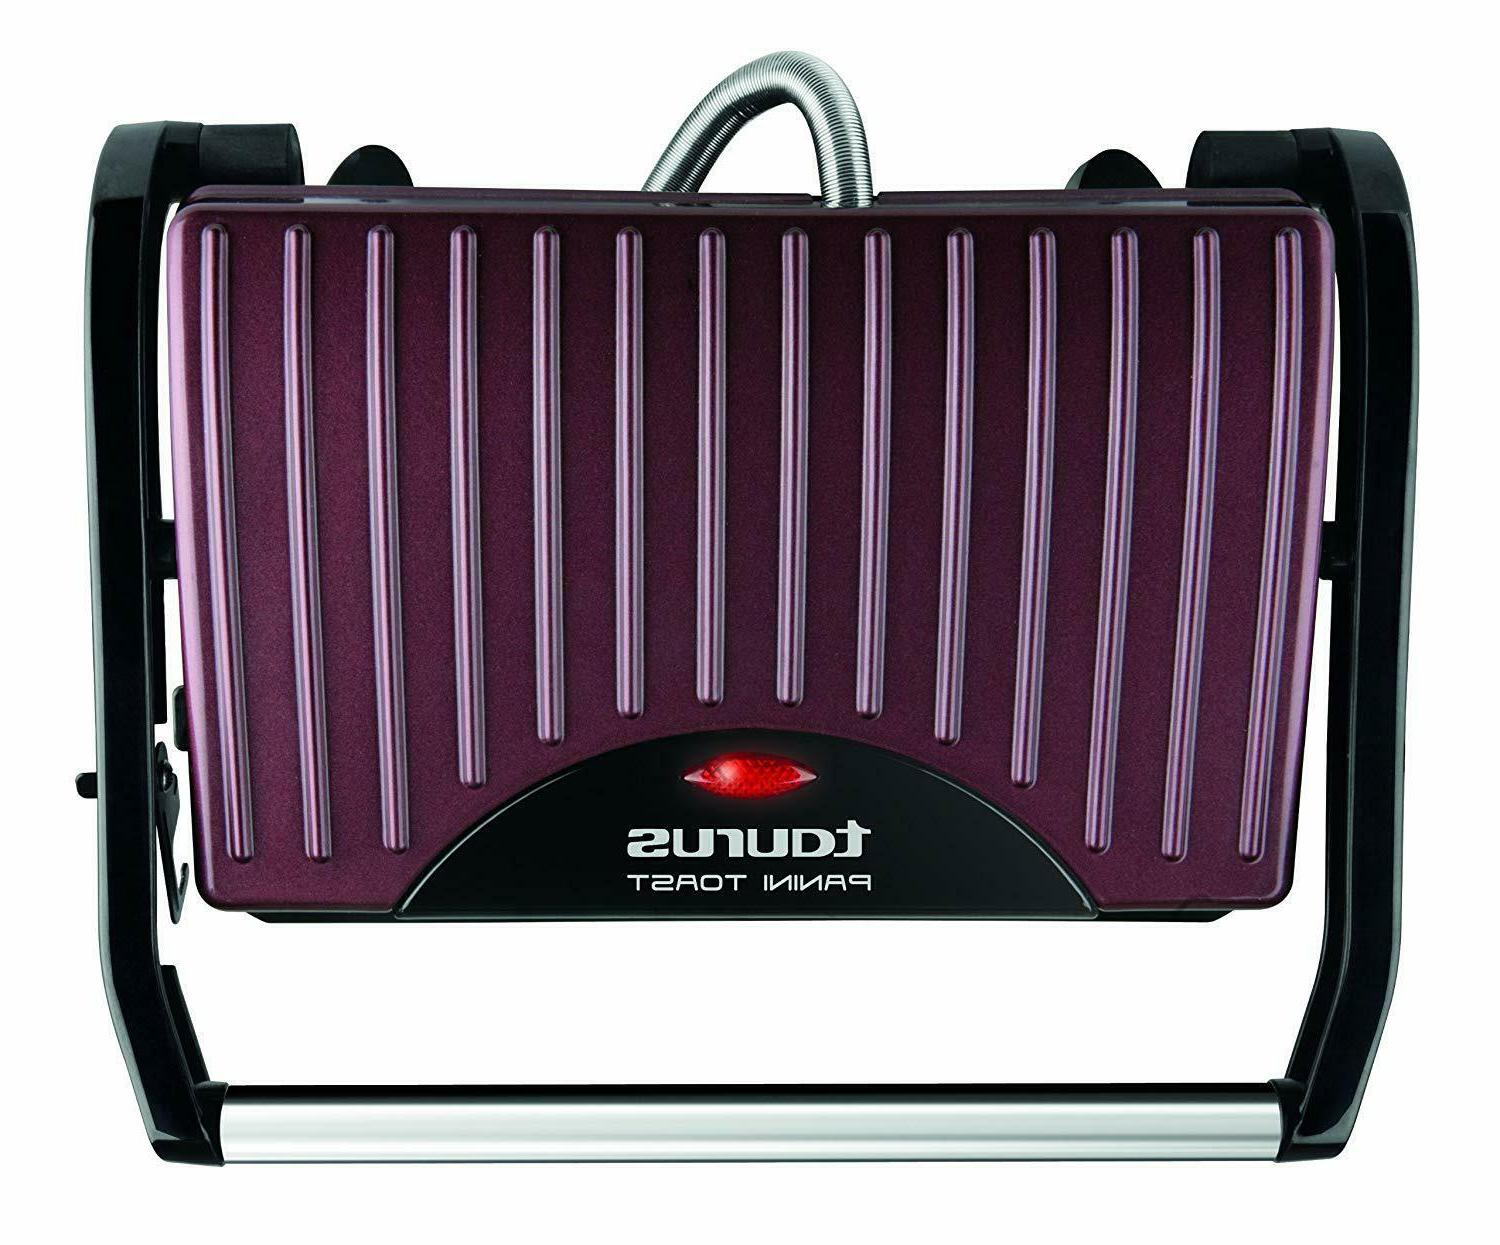 toast and go sandwich 700 w surface